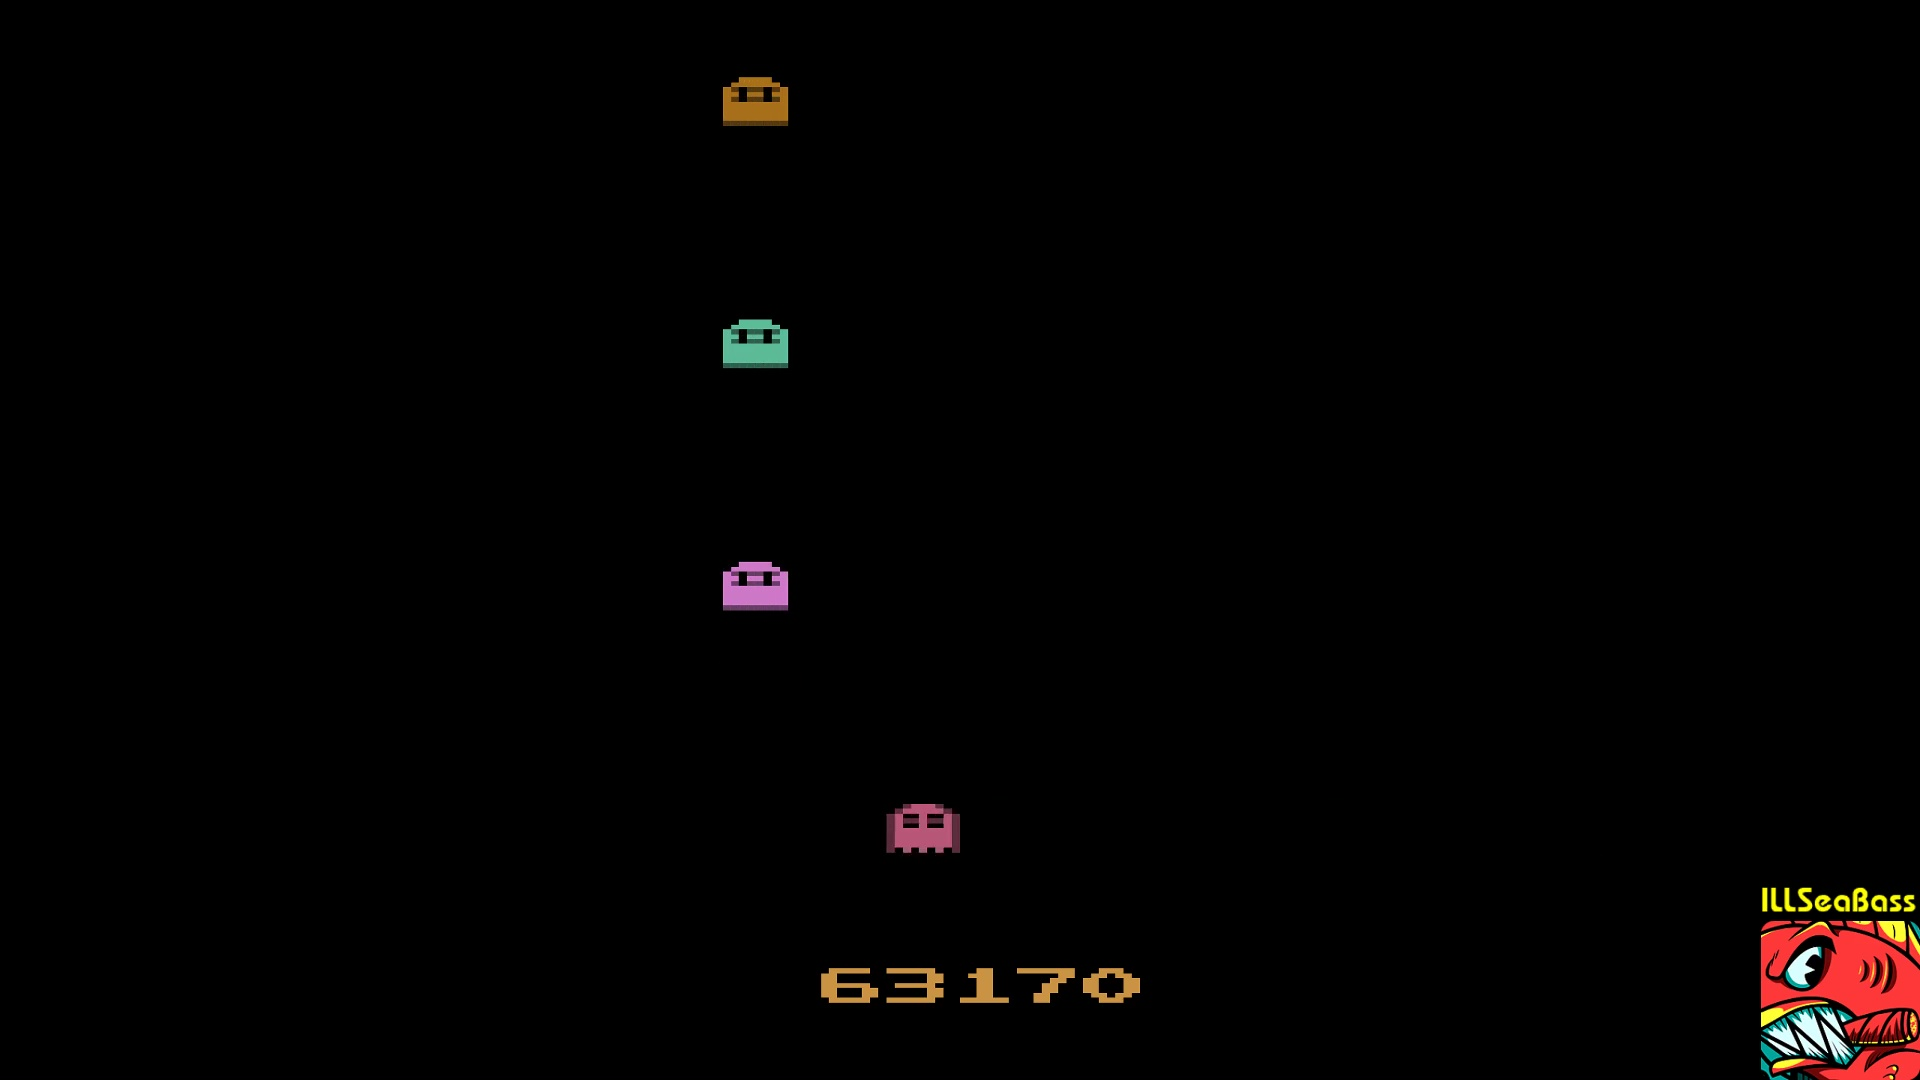 ILLSeaBass: Ms. Pac-Man (Atari 2600 Emulated) 63,170 points on 2018-01-20 10:29:36